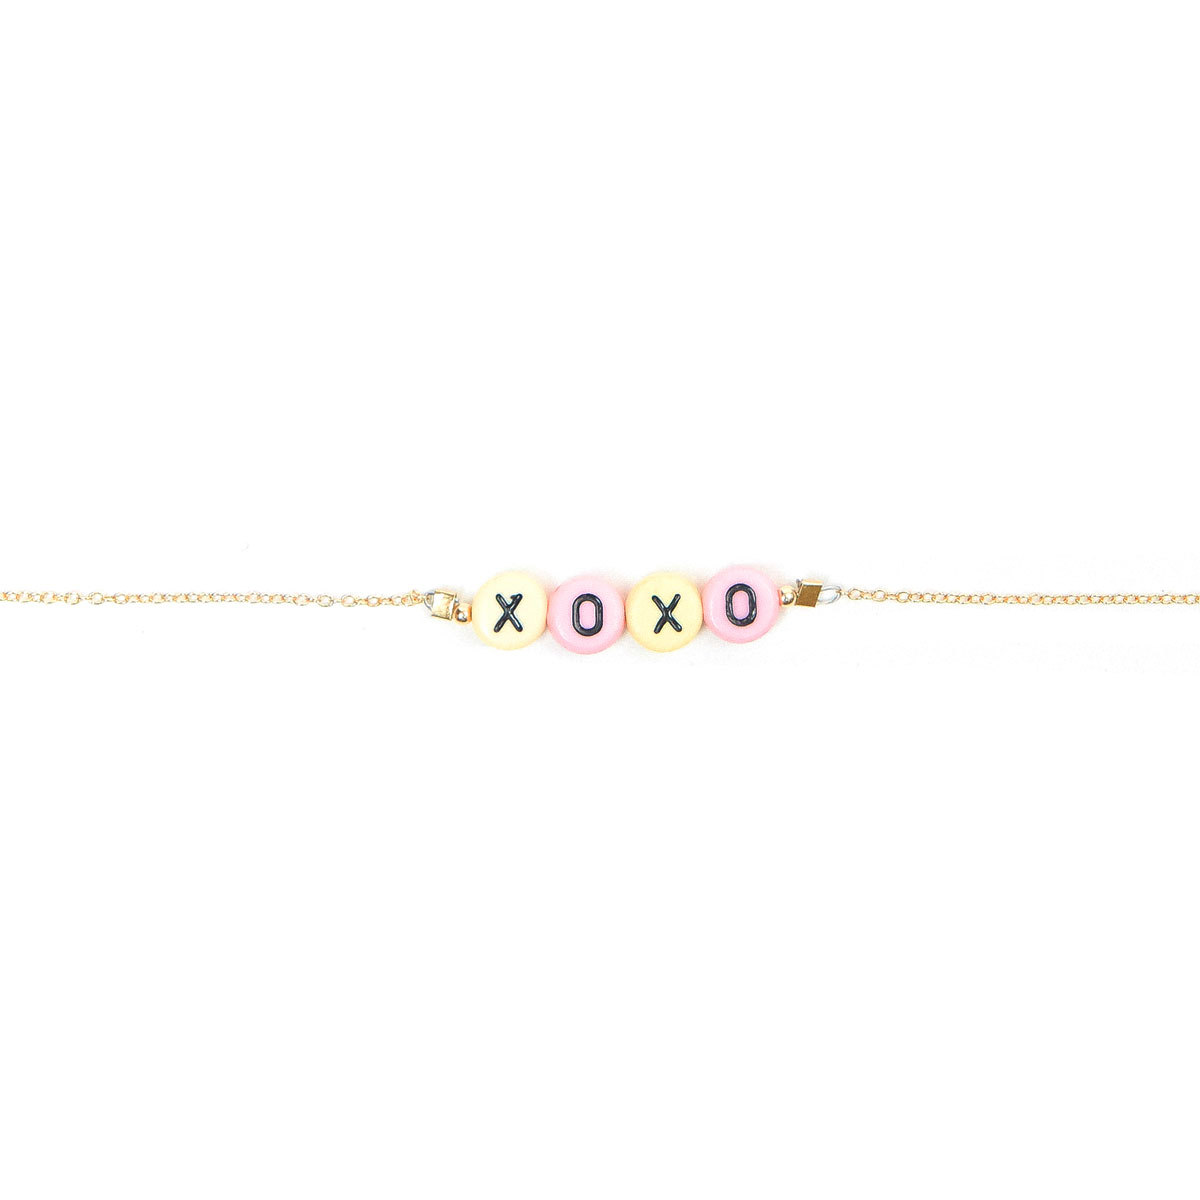 "Stella and Bow Gold Bracelet with plastic letter beads reading ""XOXO"" in pastel colors"